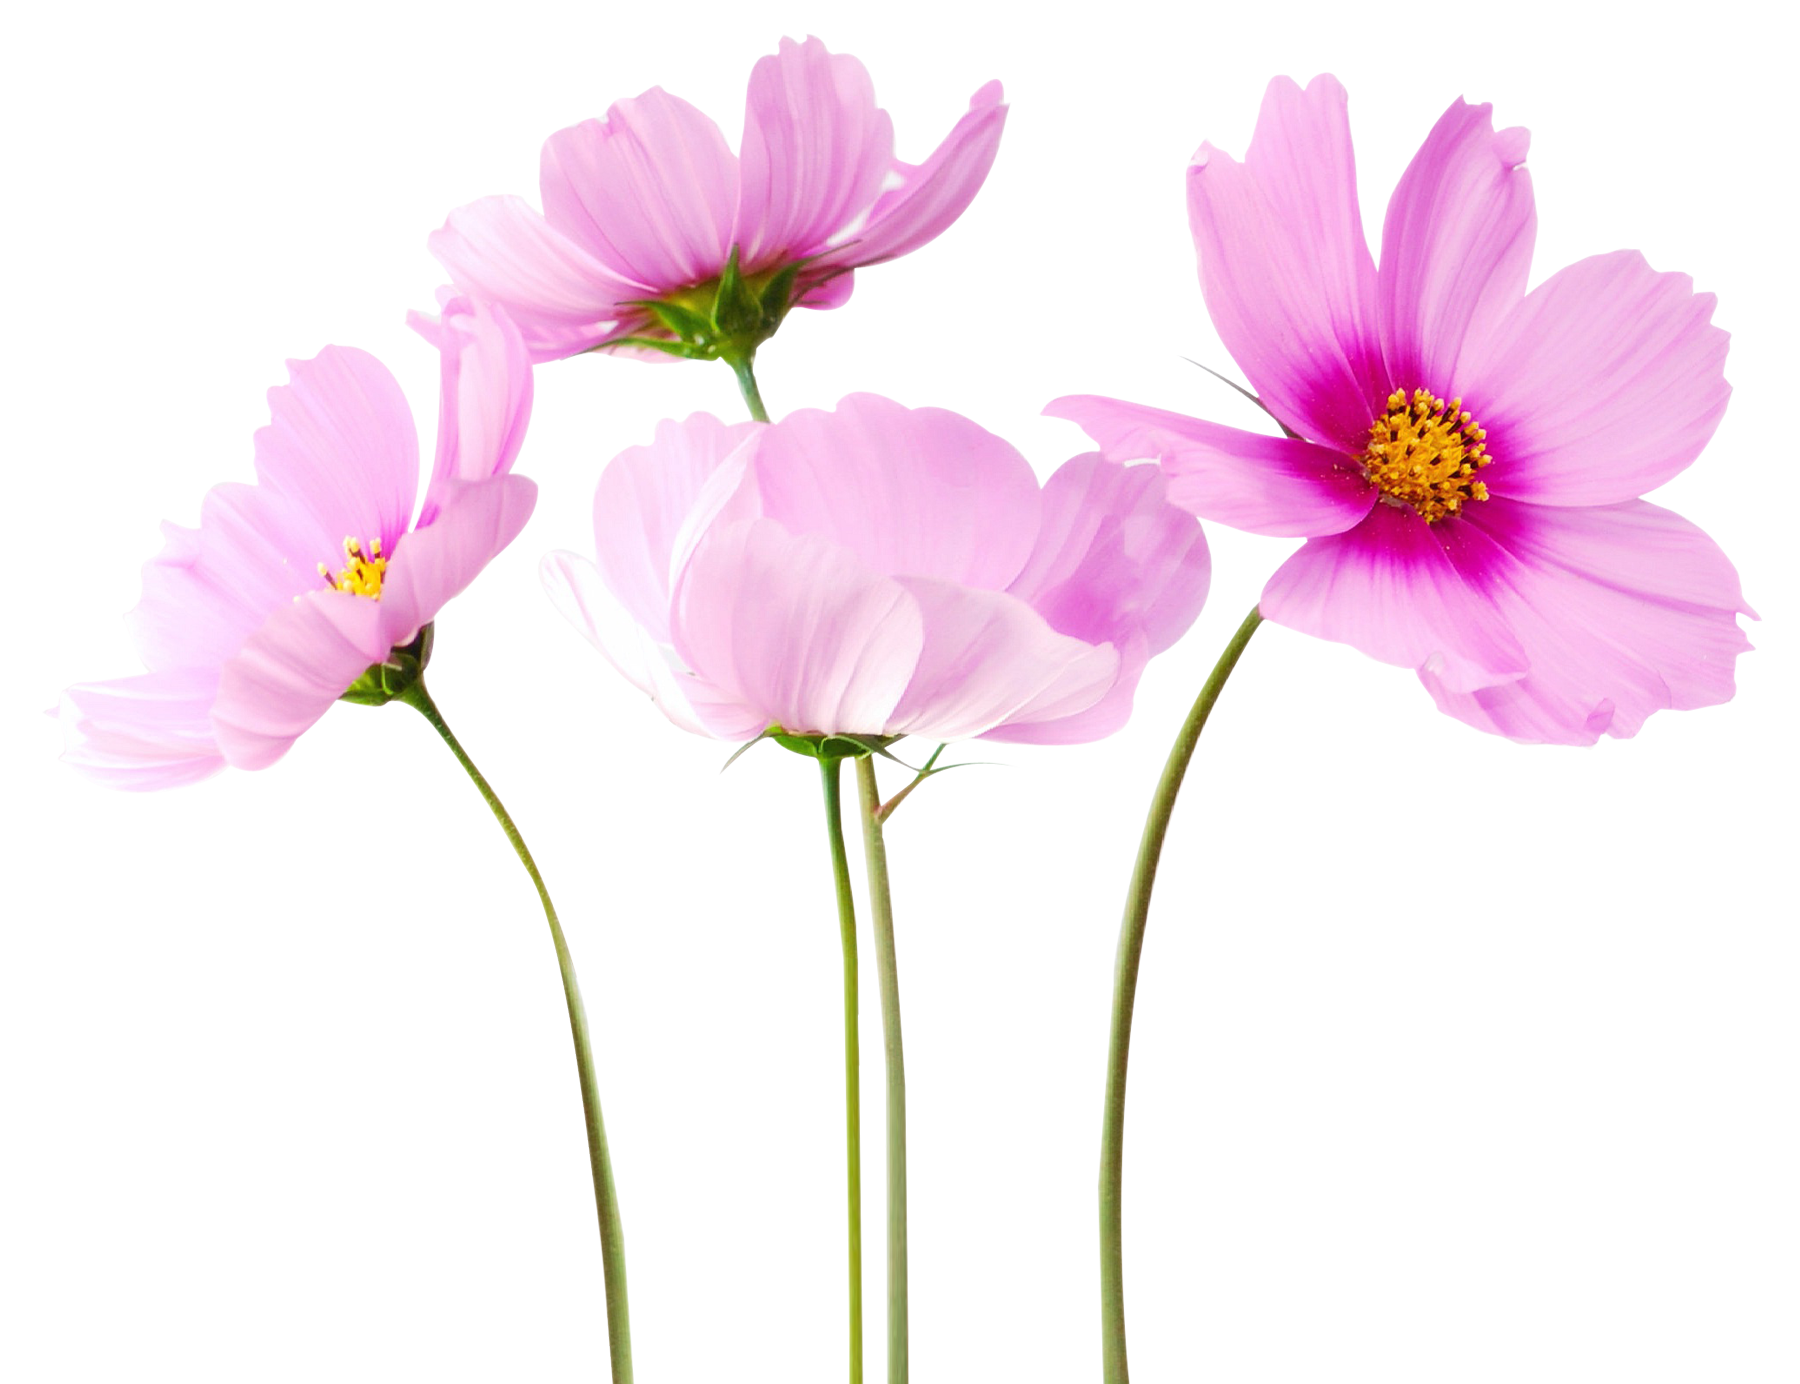 Flower png transparent. Colorful flowers image mart